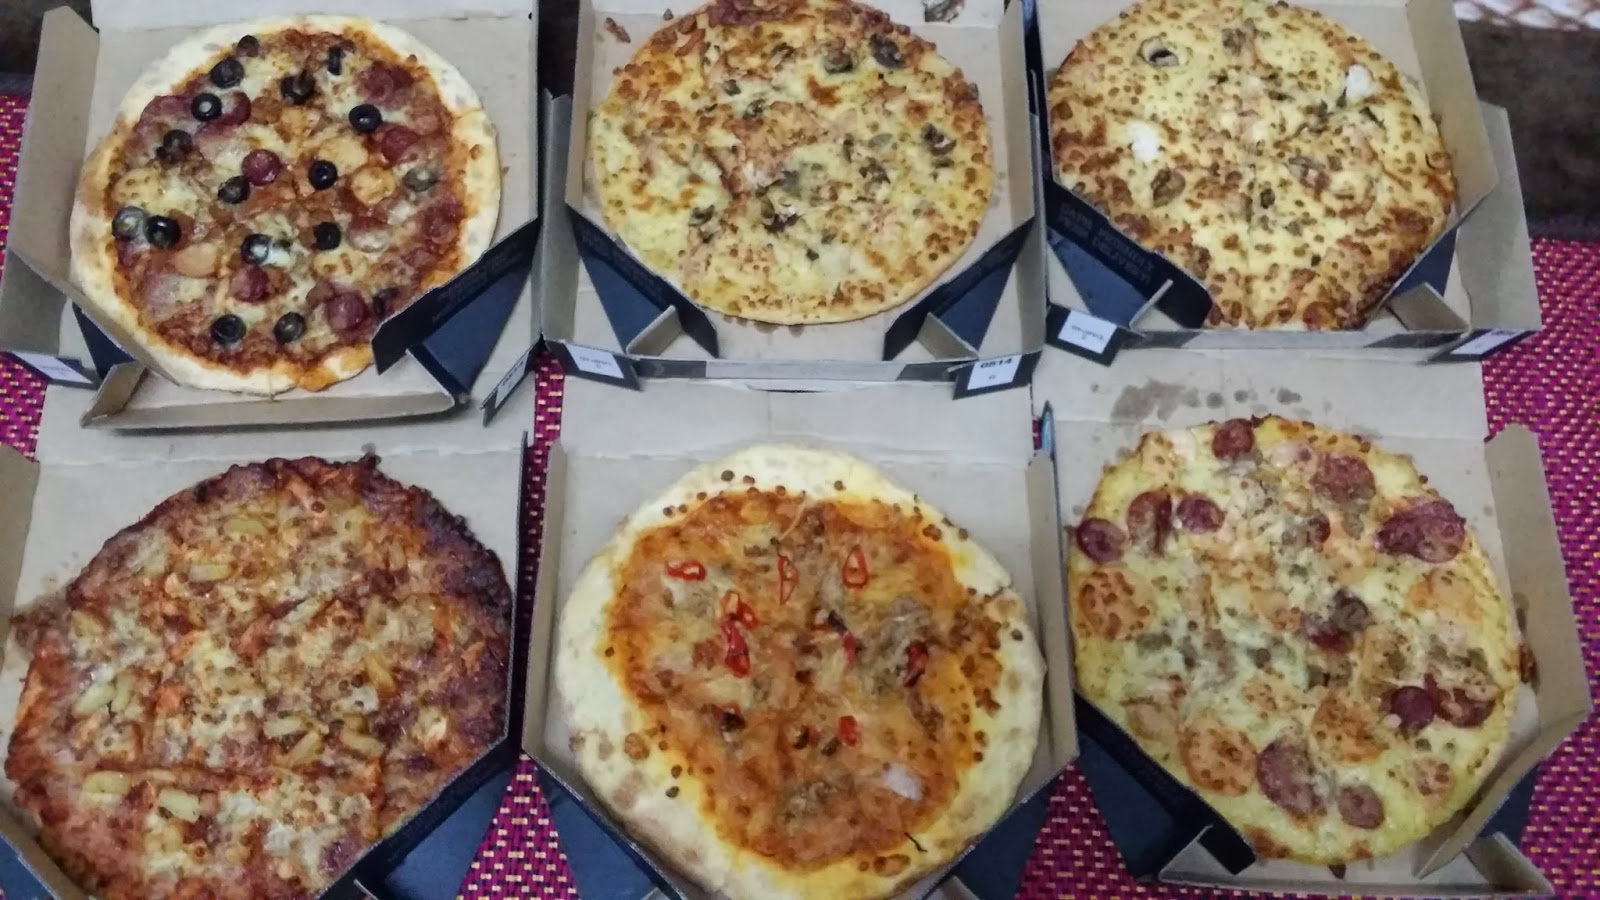 domino's pizza, pizza hut delivery, pizza paling sedap di Domino's pizza, classified chicken dominos pizza, pizza hut,